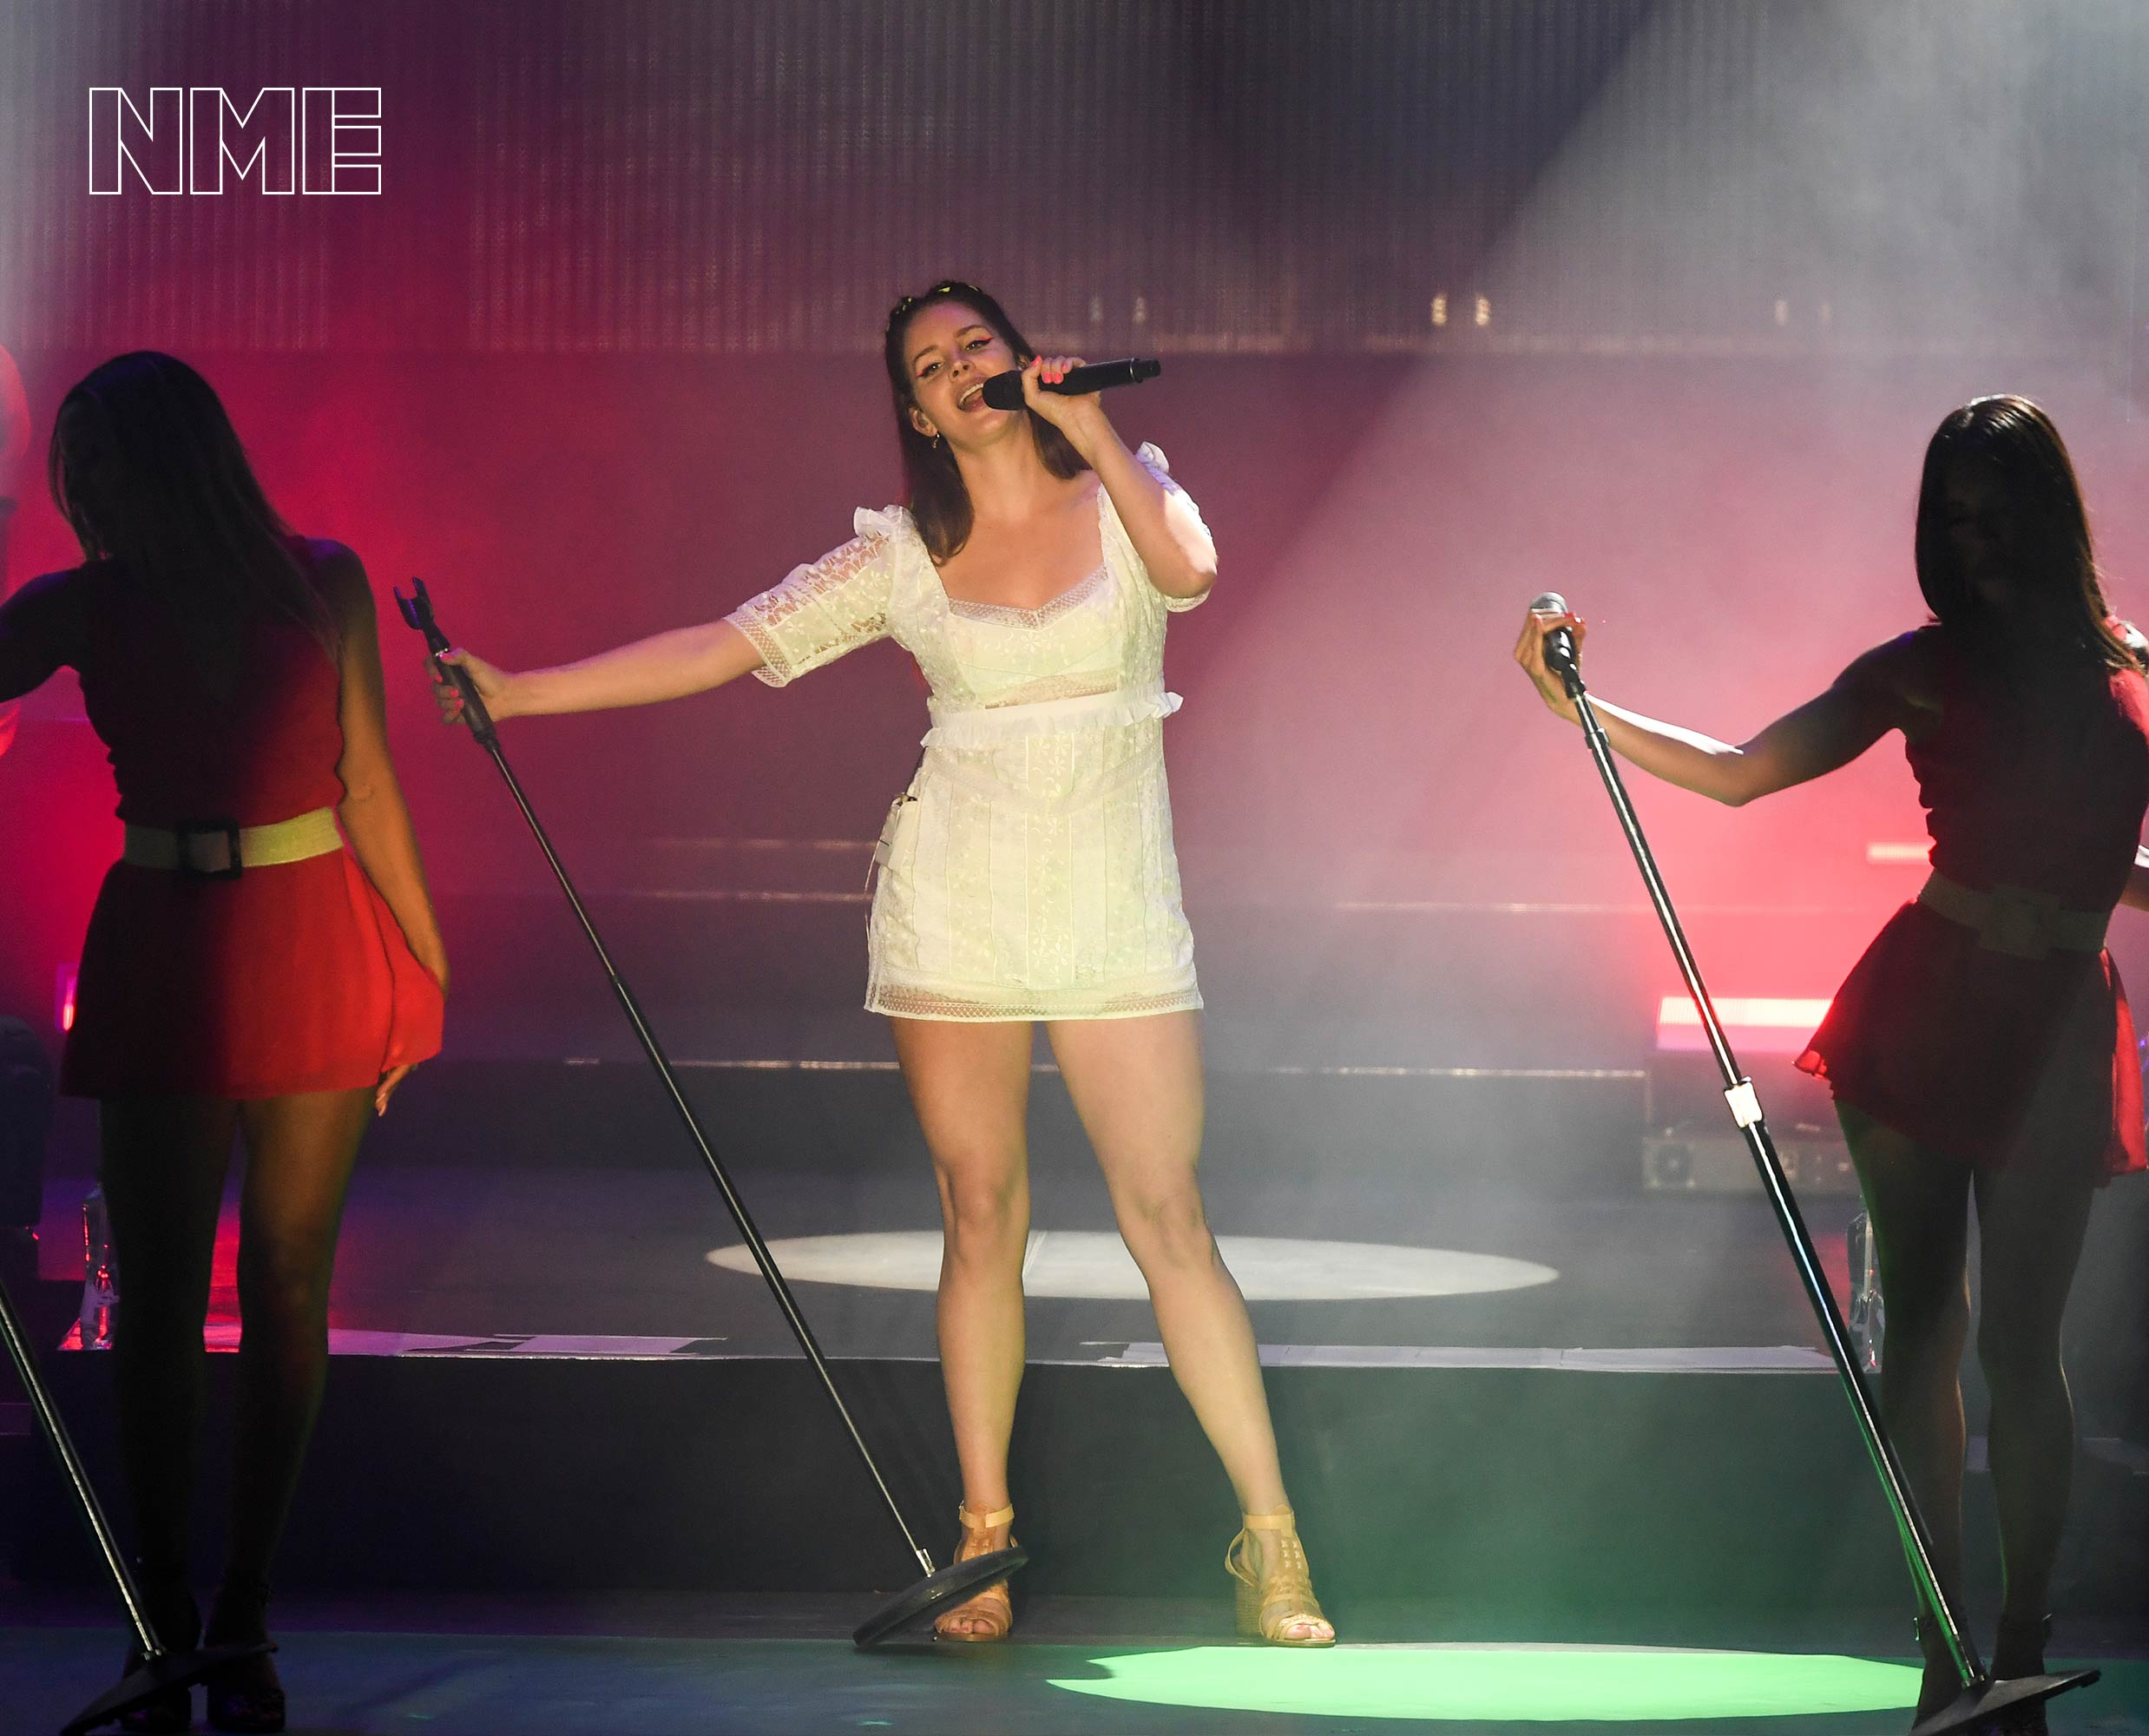 The Big Read Lana Del Rey Mouthing Off With Miss America Lanapedia, the biggest lana del rey wiki, is the best source for all there is to know about her music, life, and performances. the big read lana del rey mouthing